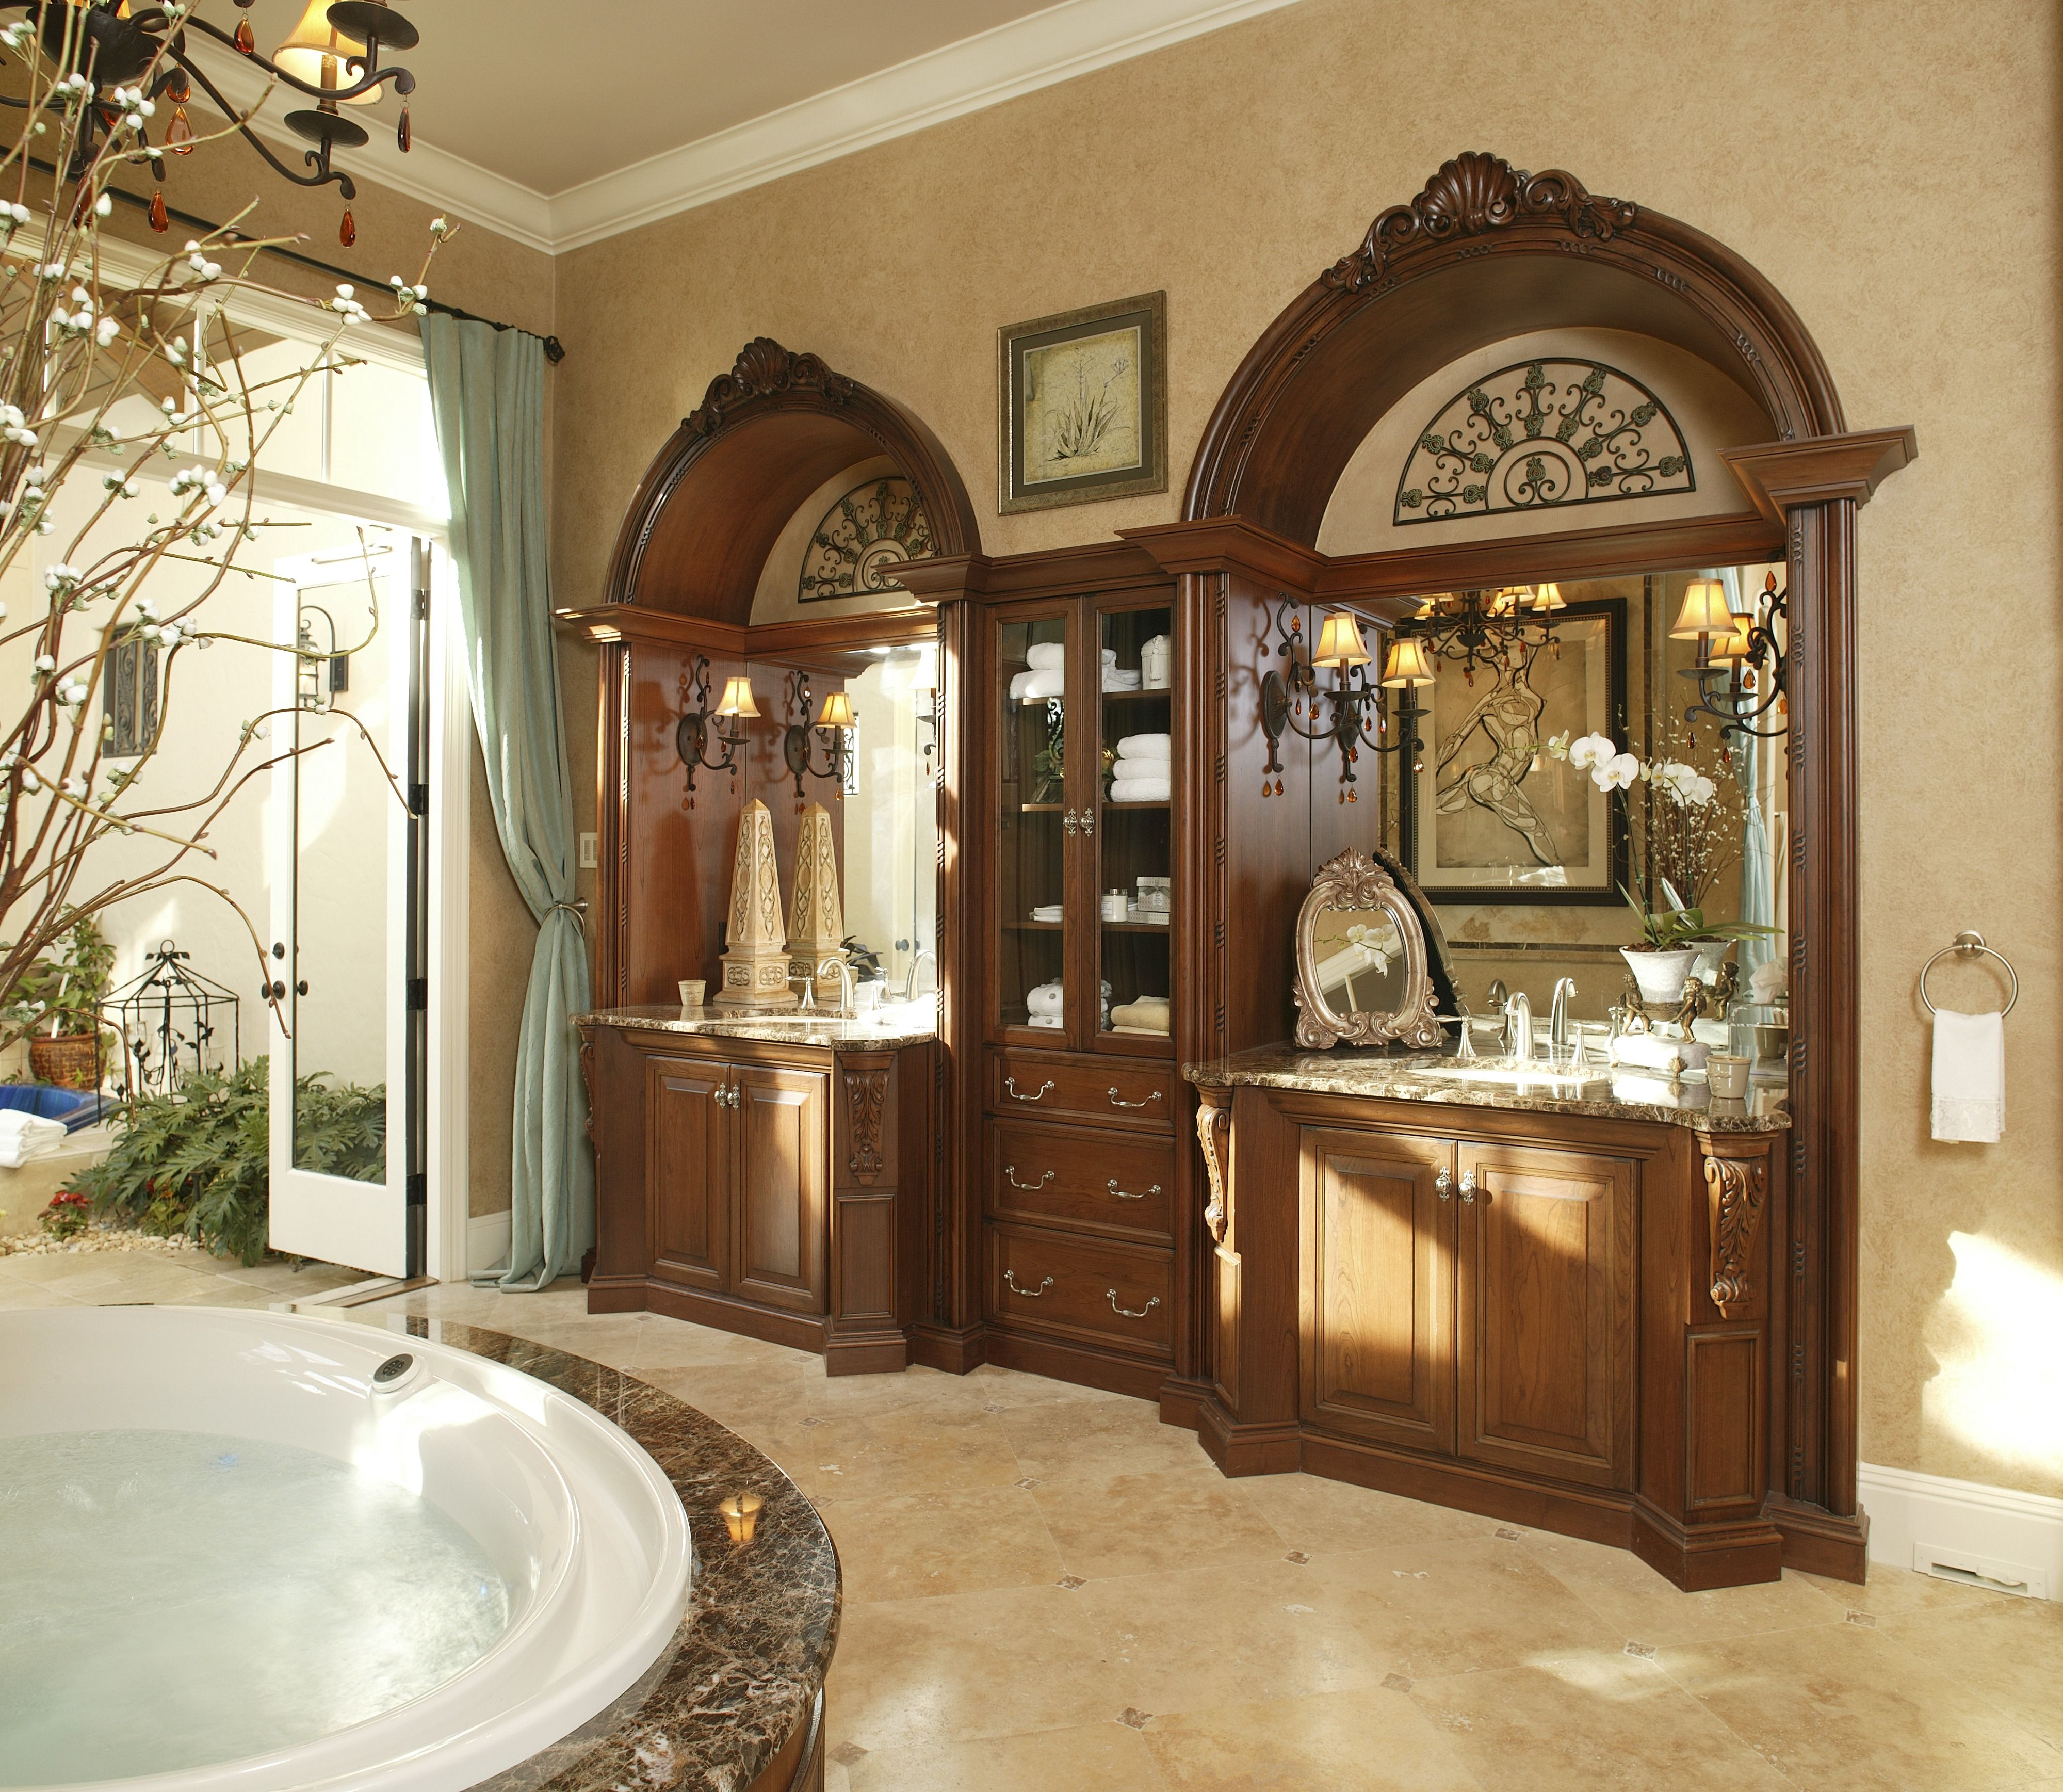 What Is The Average Cost Of A Bathroom Renovation